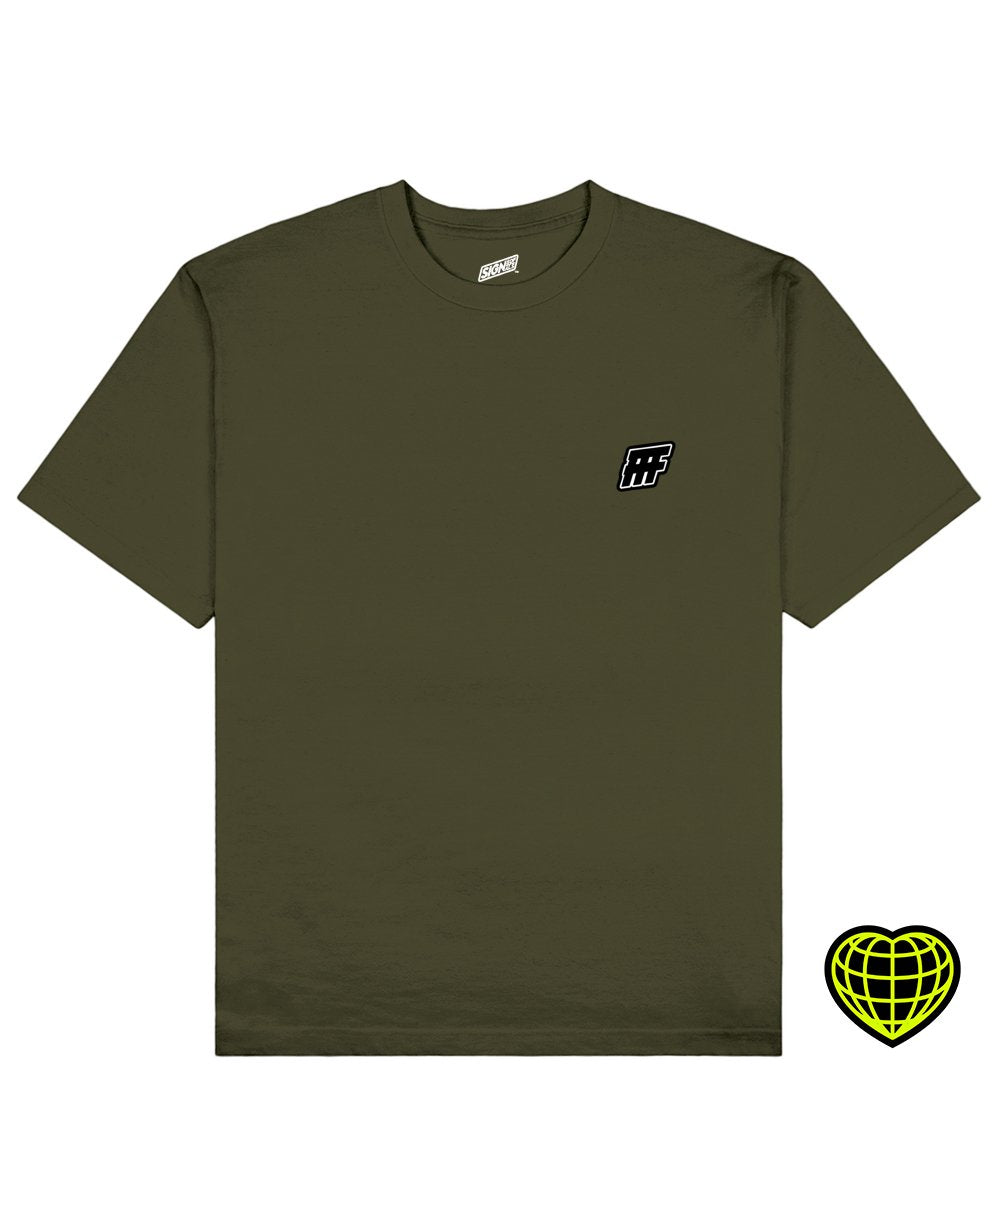 FFF Print T-shirt in Khaki - T-Shirts - Signs of Signals - BRANMA